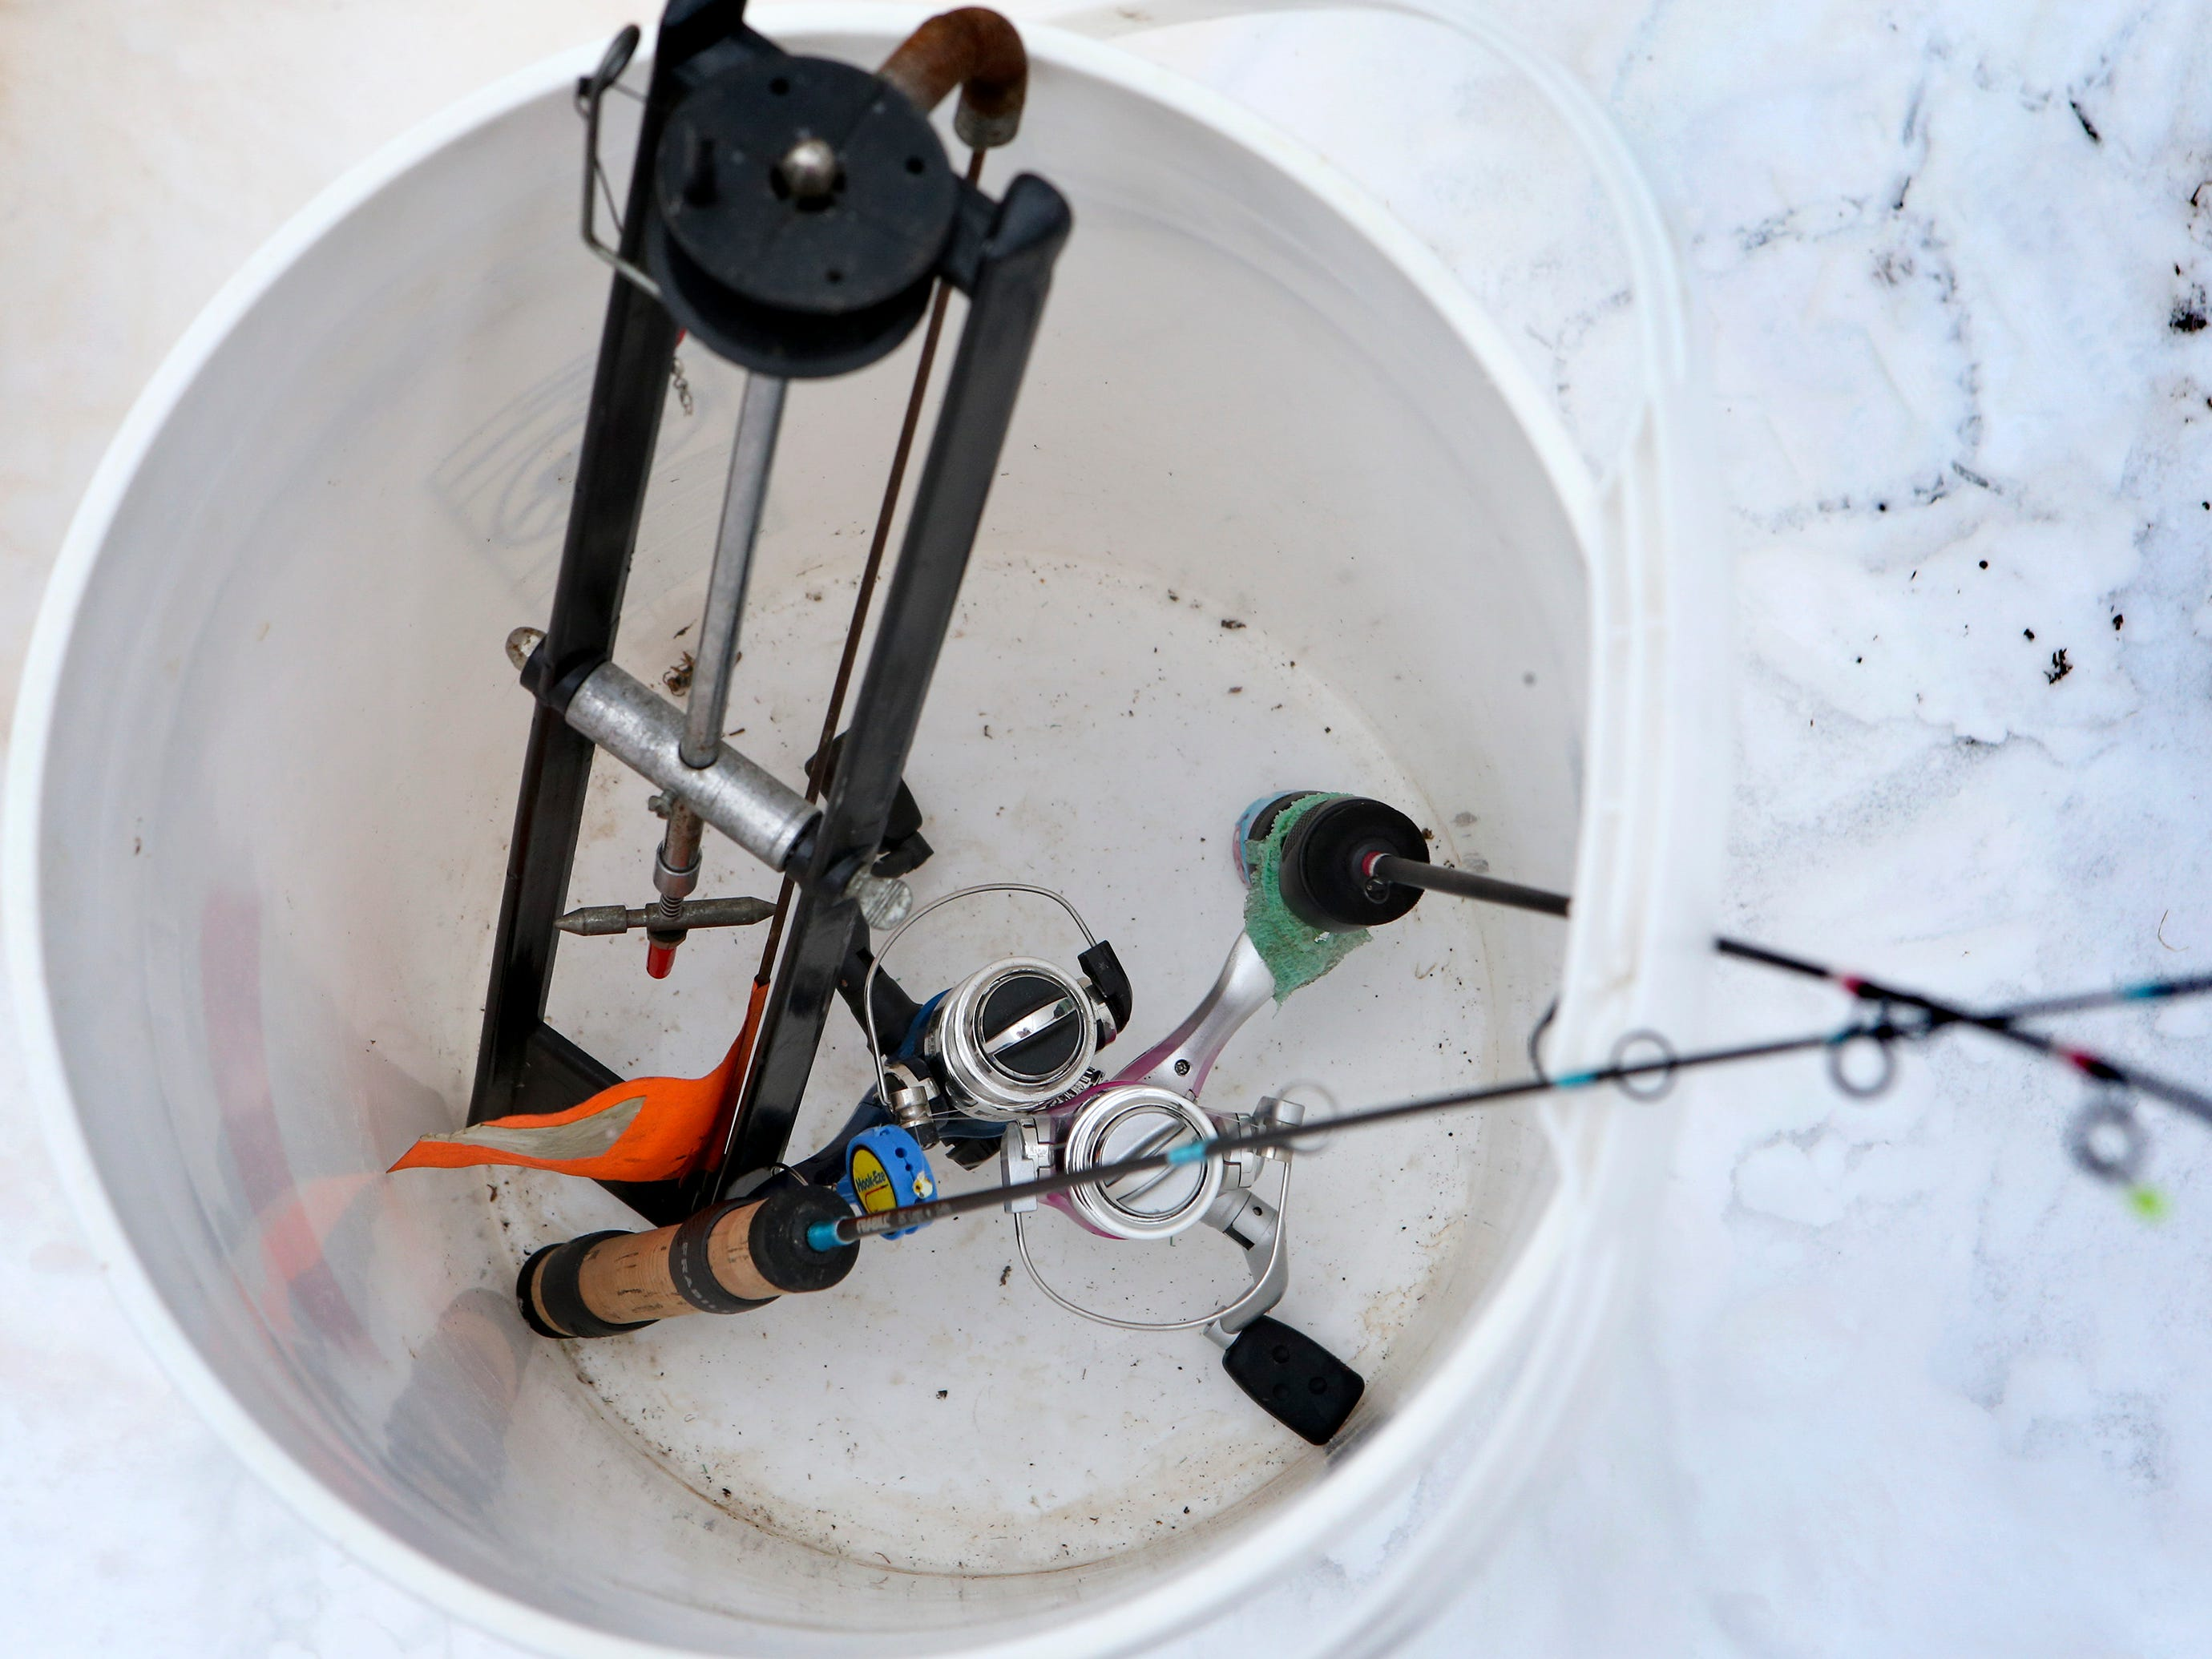 Buckets containing a tip up and jig poles are loaned to families to try ice fishing on Lower Genesee Lake in Summit during a free instructional ice fishing day hosted by Sons of the Watertown American Legion Post 189 on Jan. 19. The event drew more than 50 children and their attending adults.